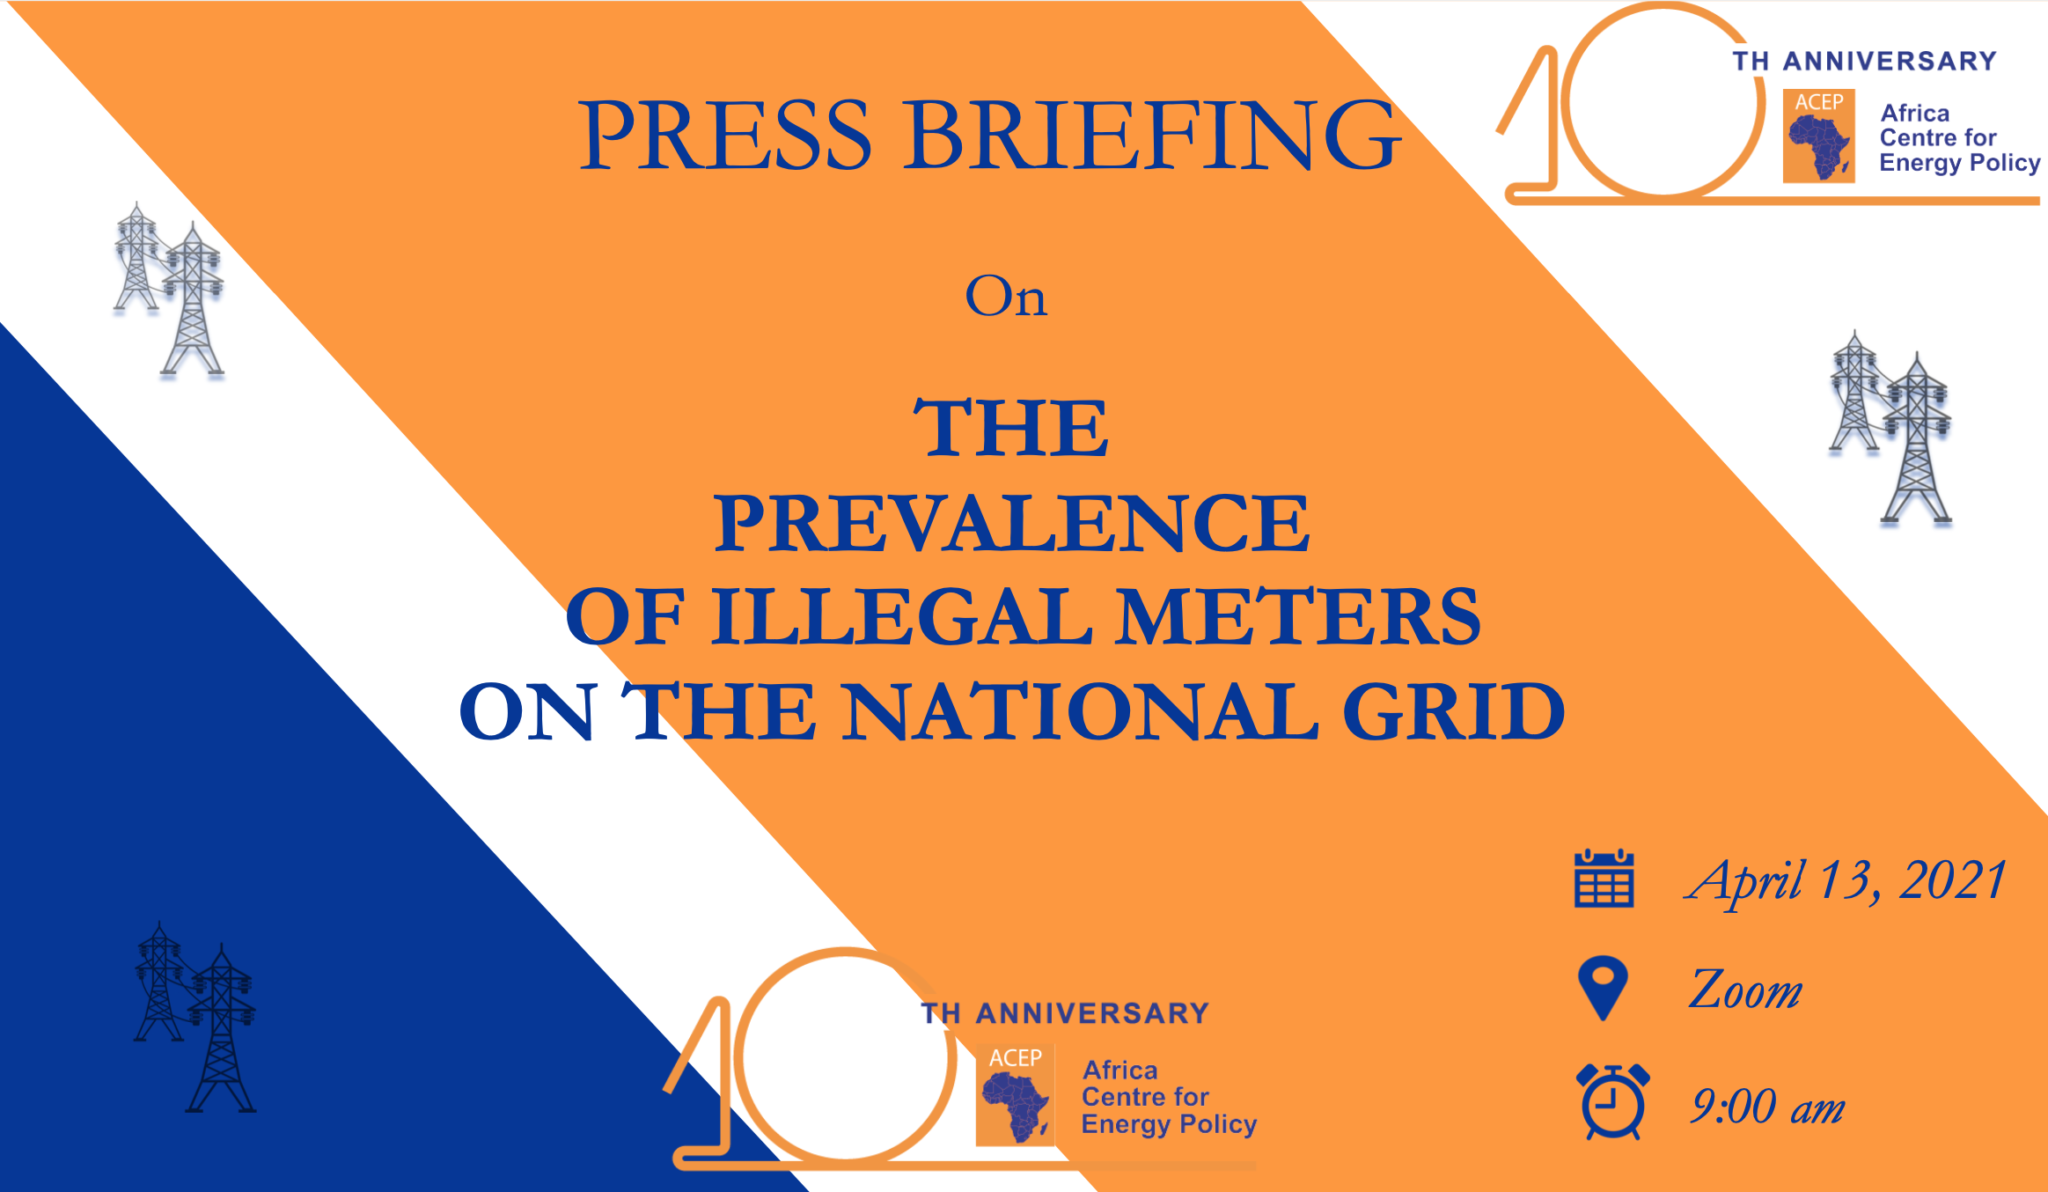 ACEP Press Briefing On Prevalence Of Illegal Meters